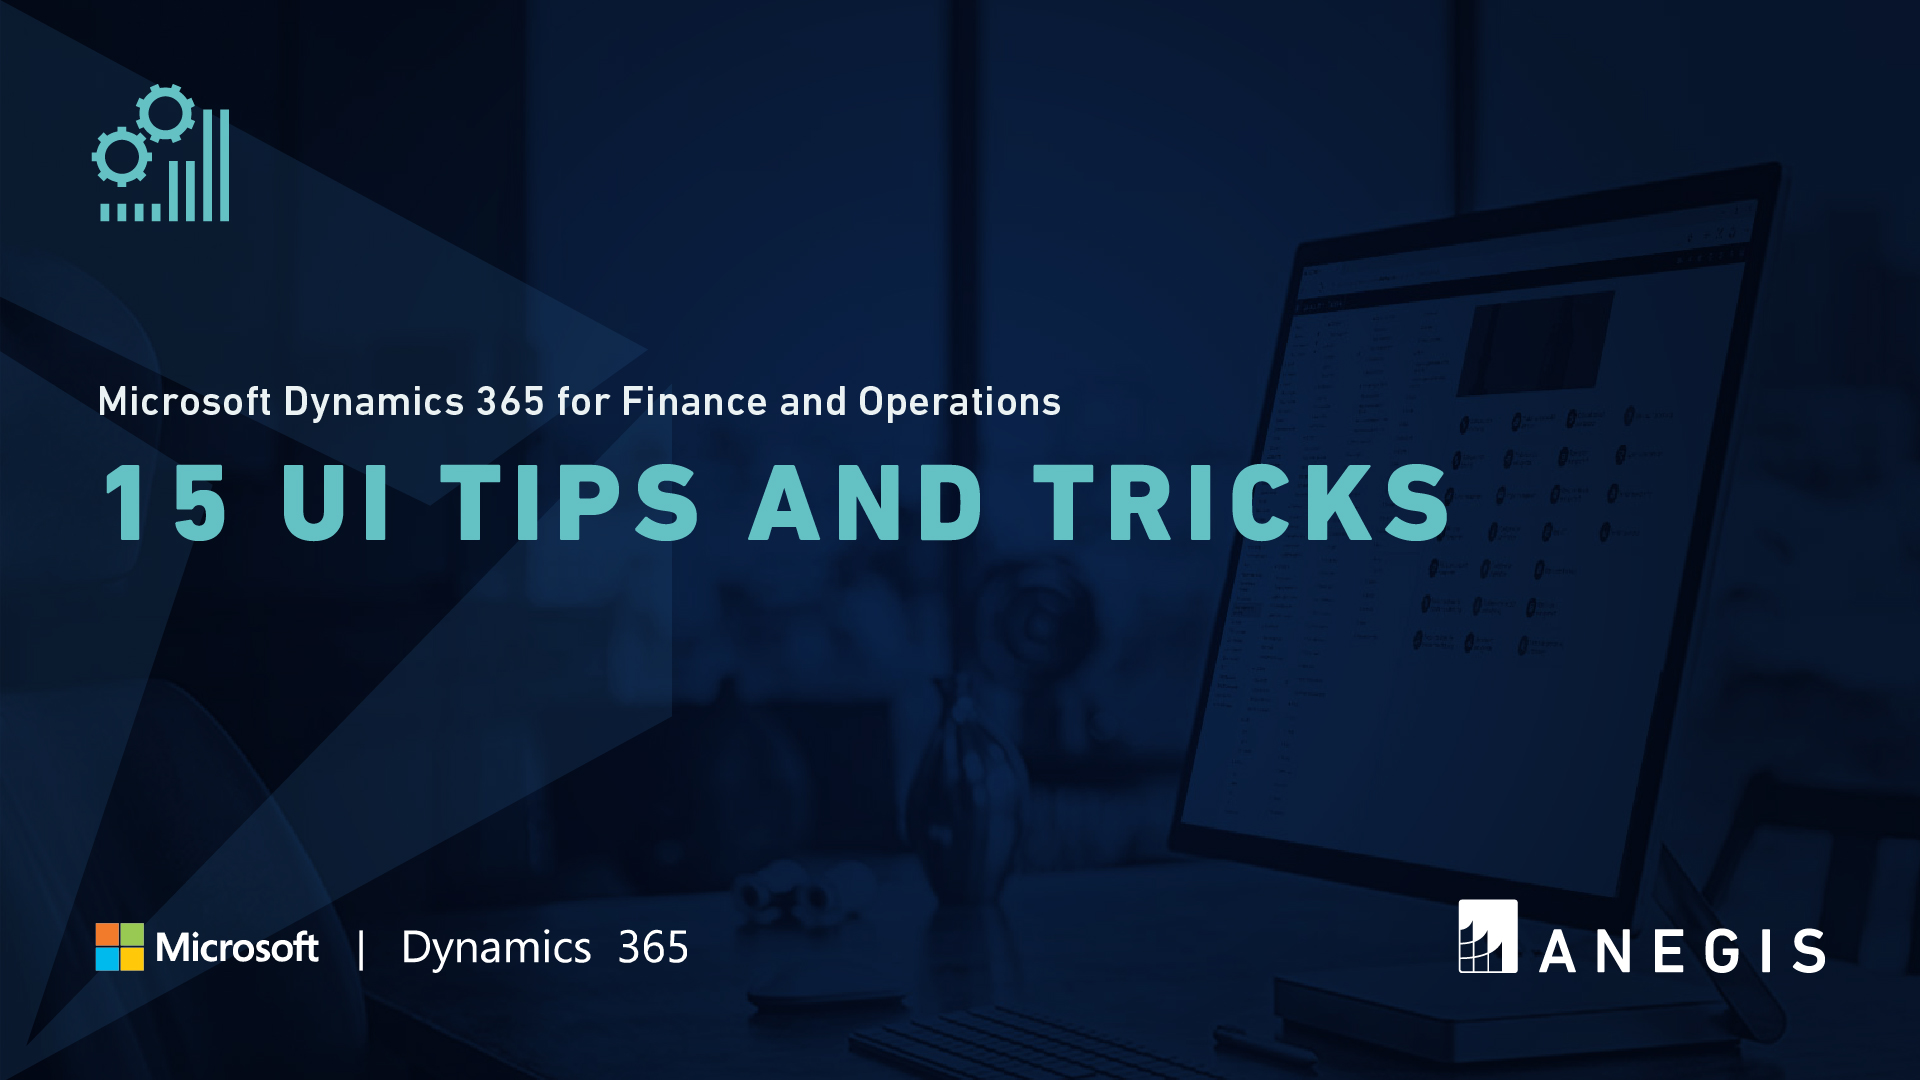 D365 F&O: 15 UI Tips and Tricks